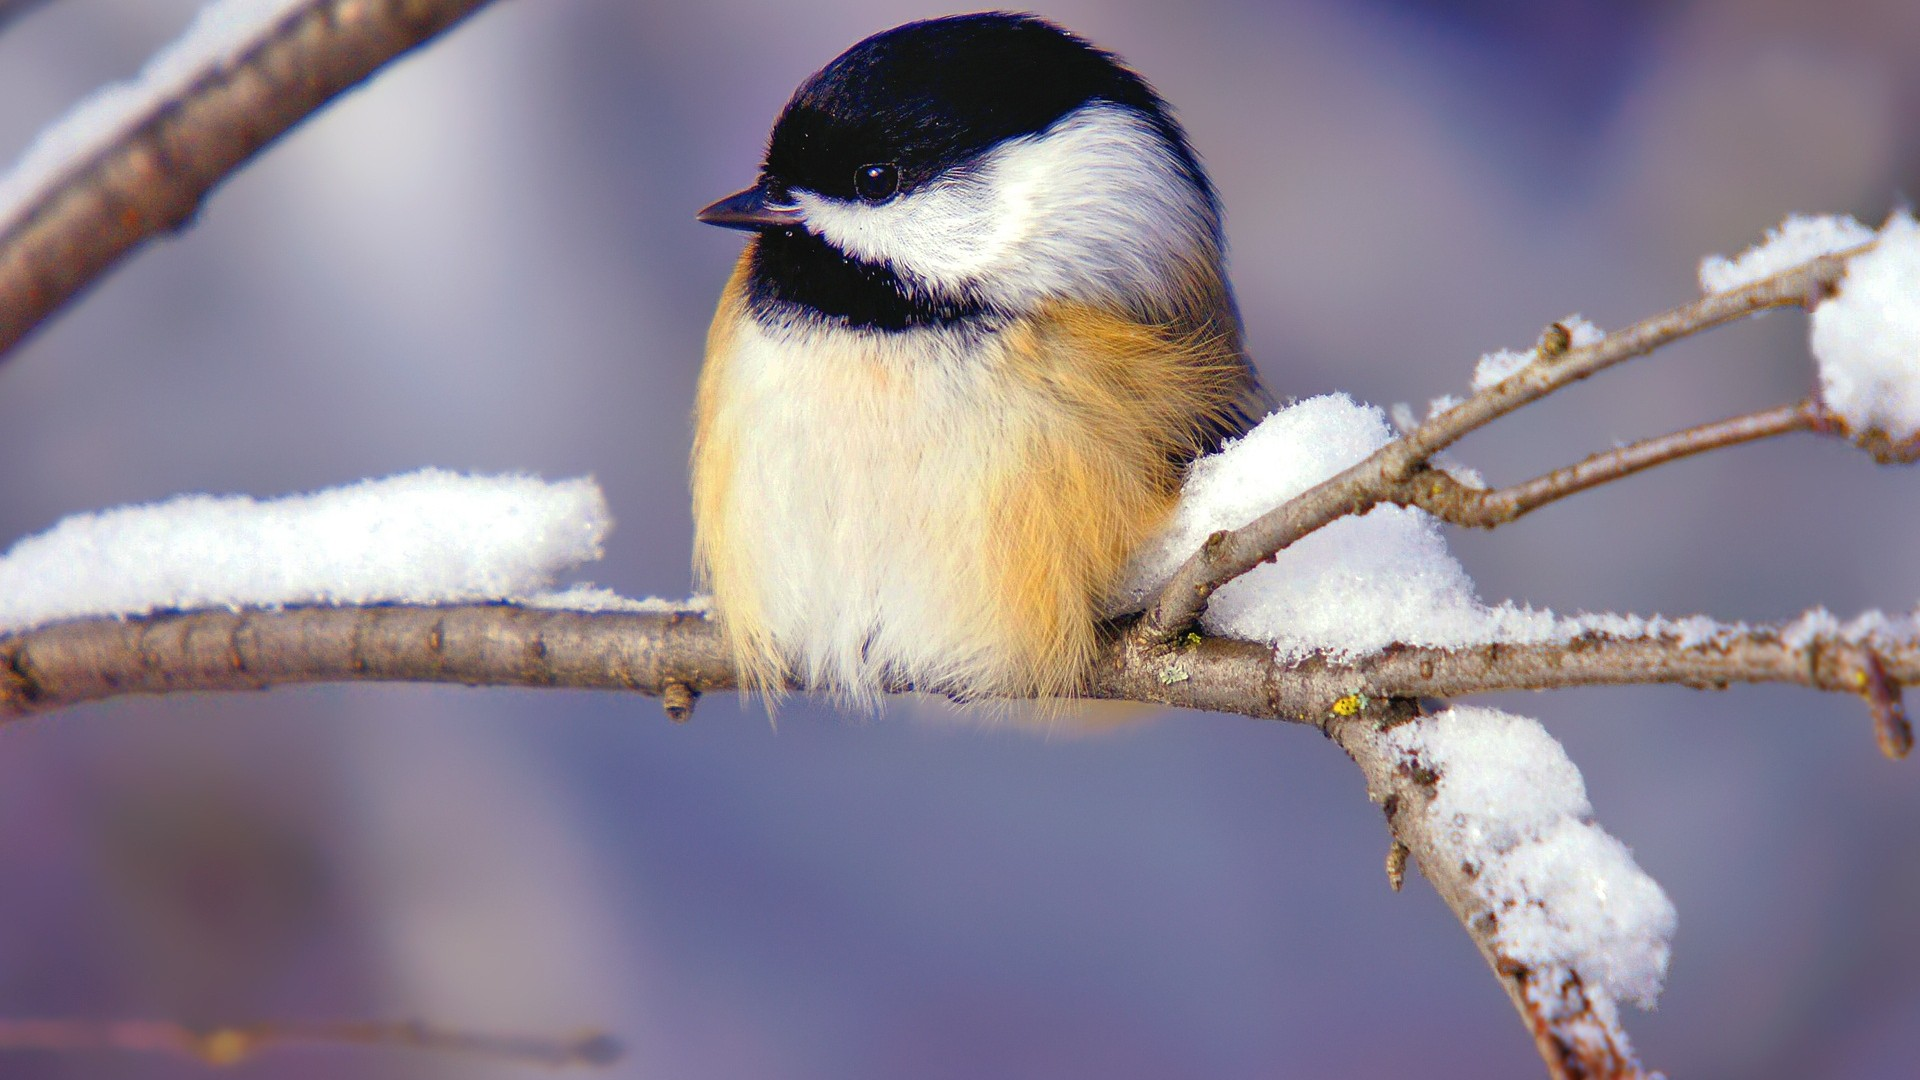 Tiny WInter Bird Wallpapers - New HD Wallpapers